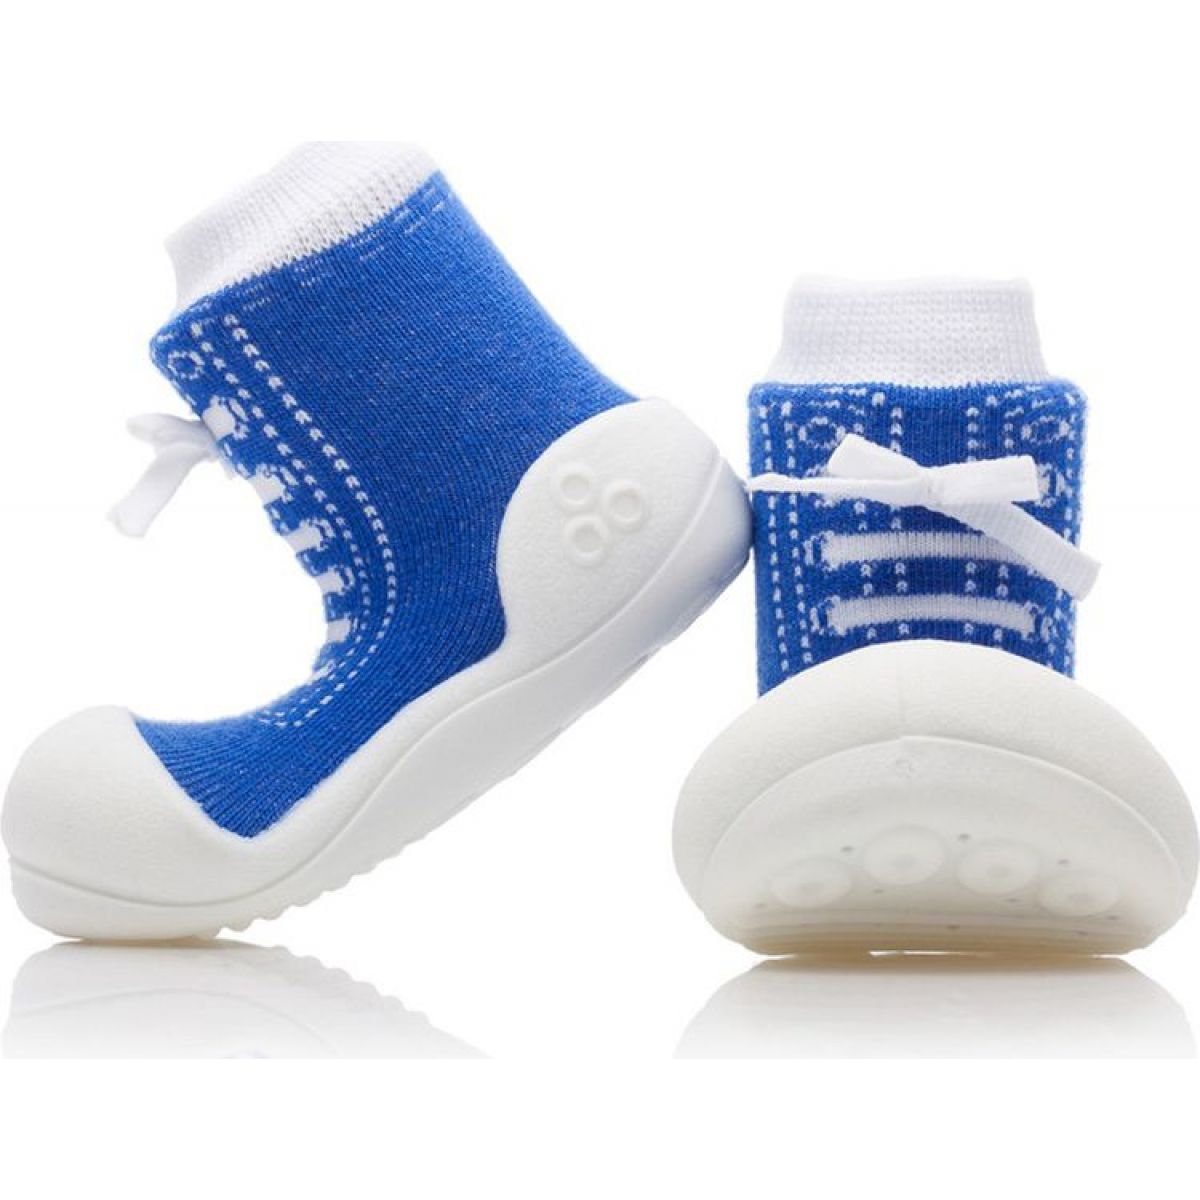 Attipas Sneakers Blue - Euro 19